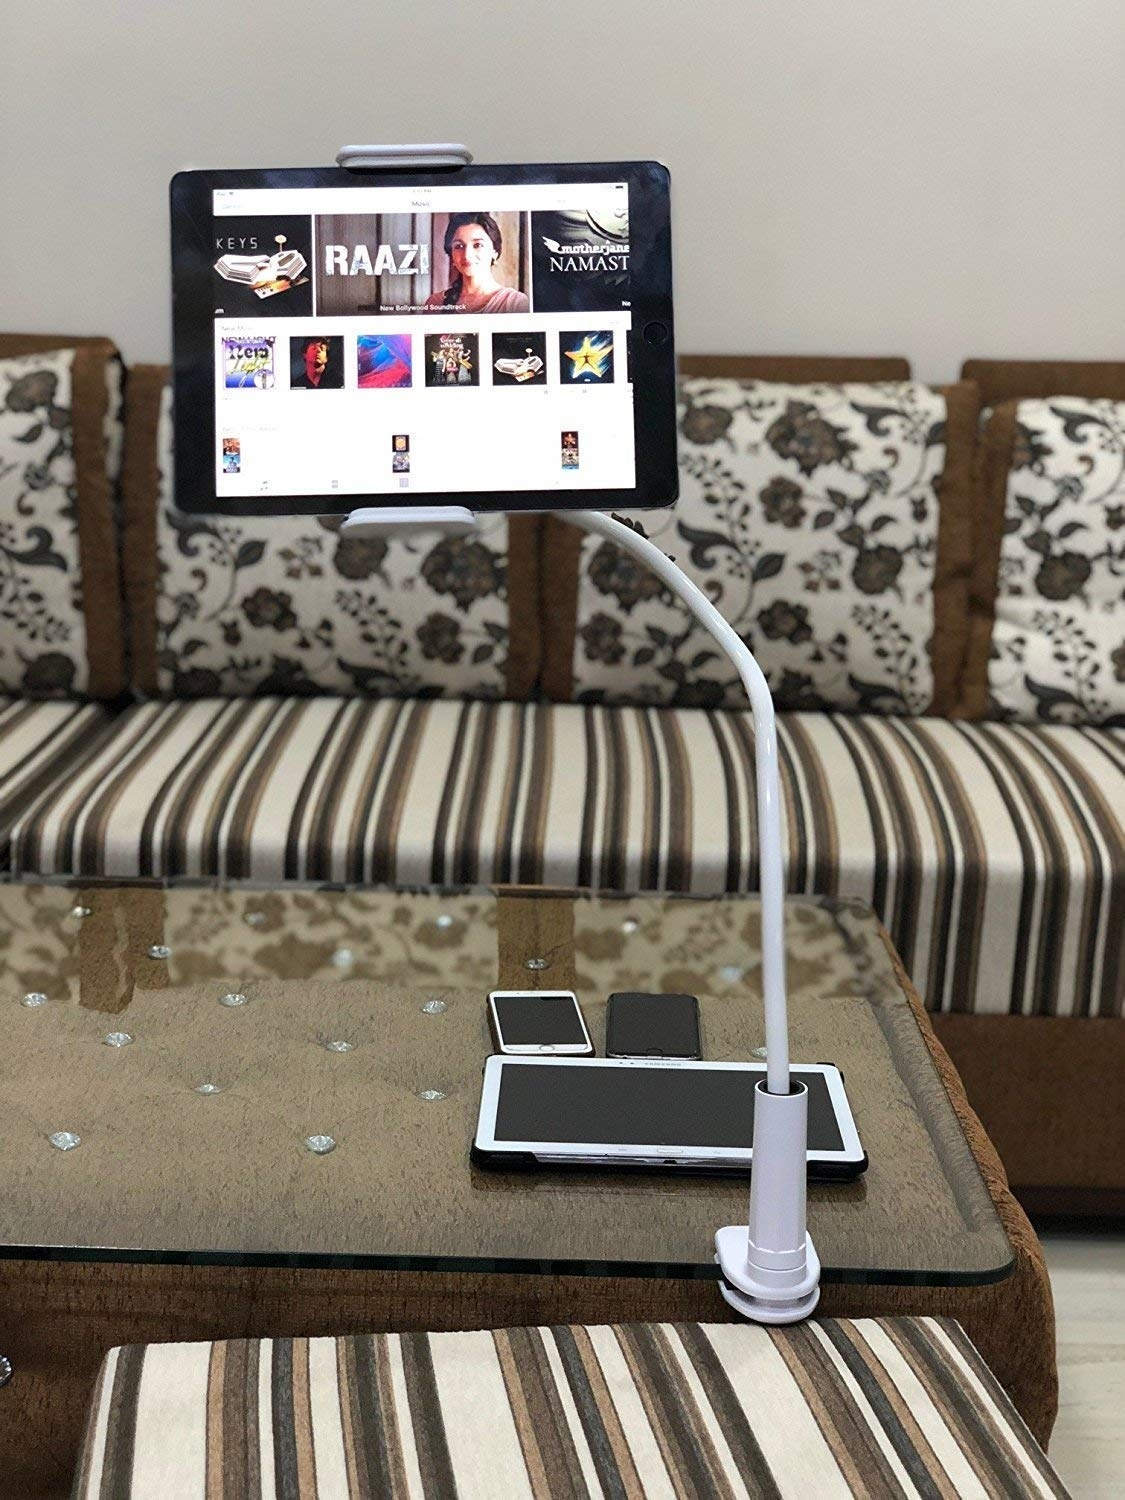 A tablet holder on a table